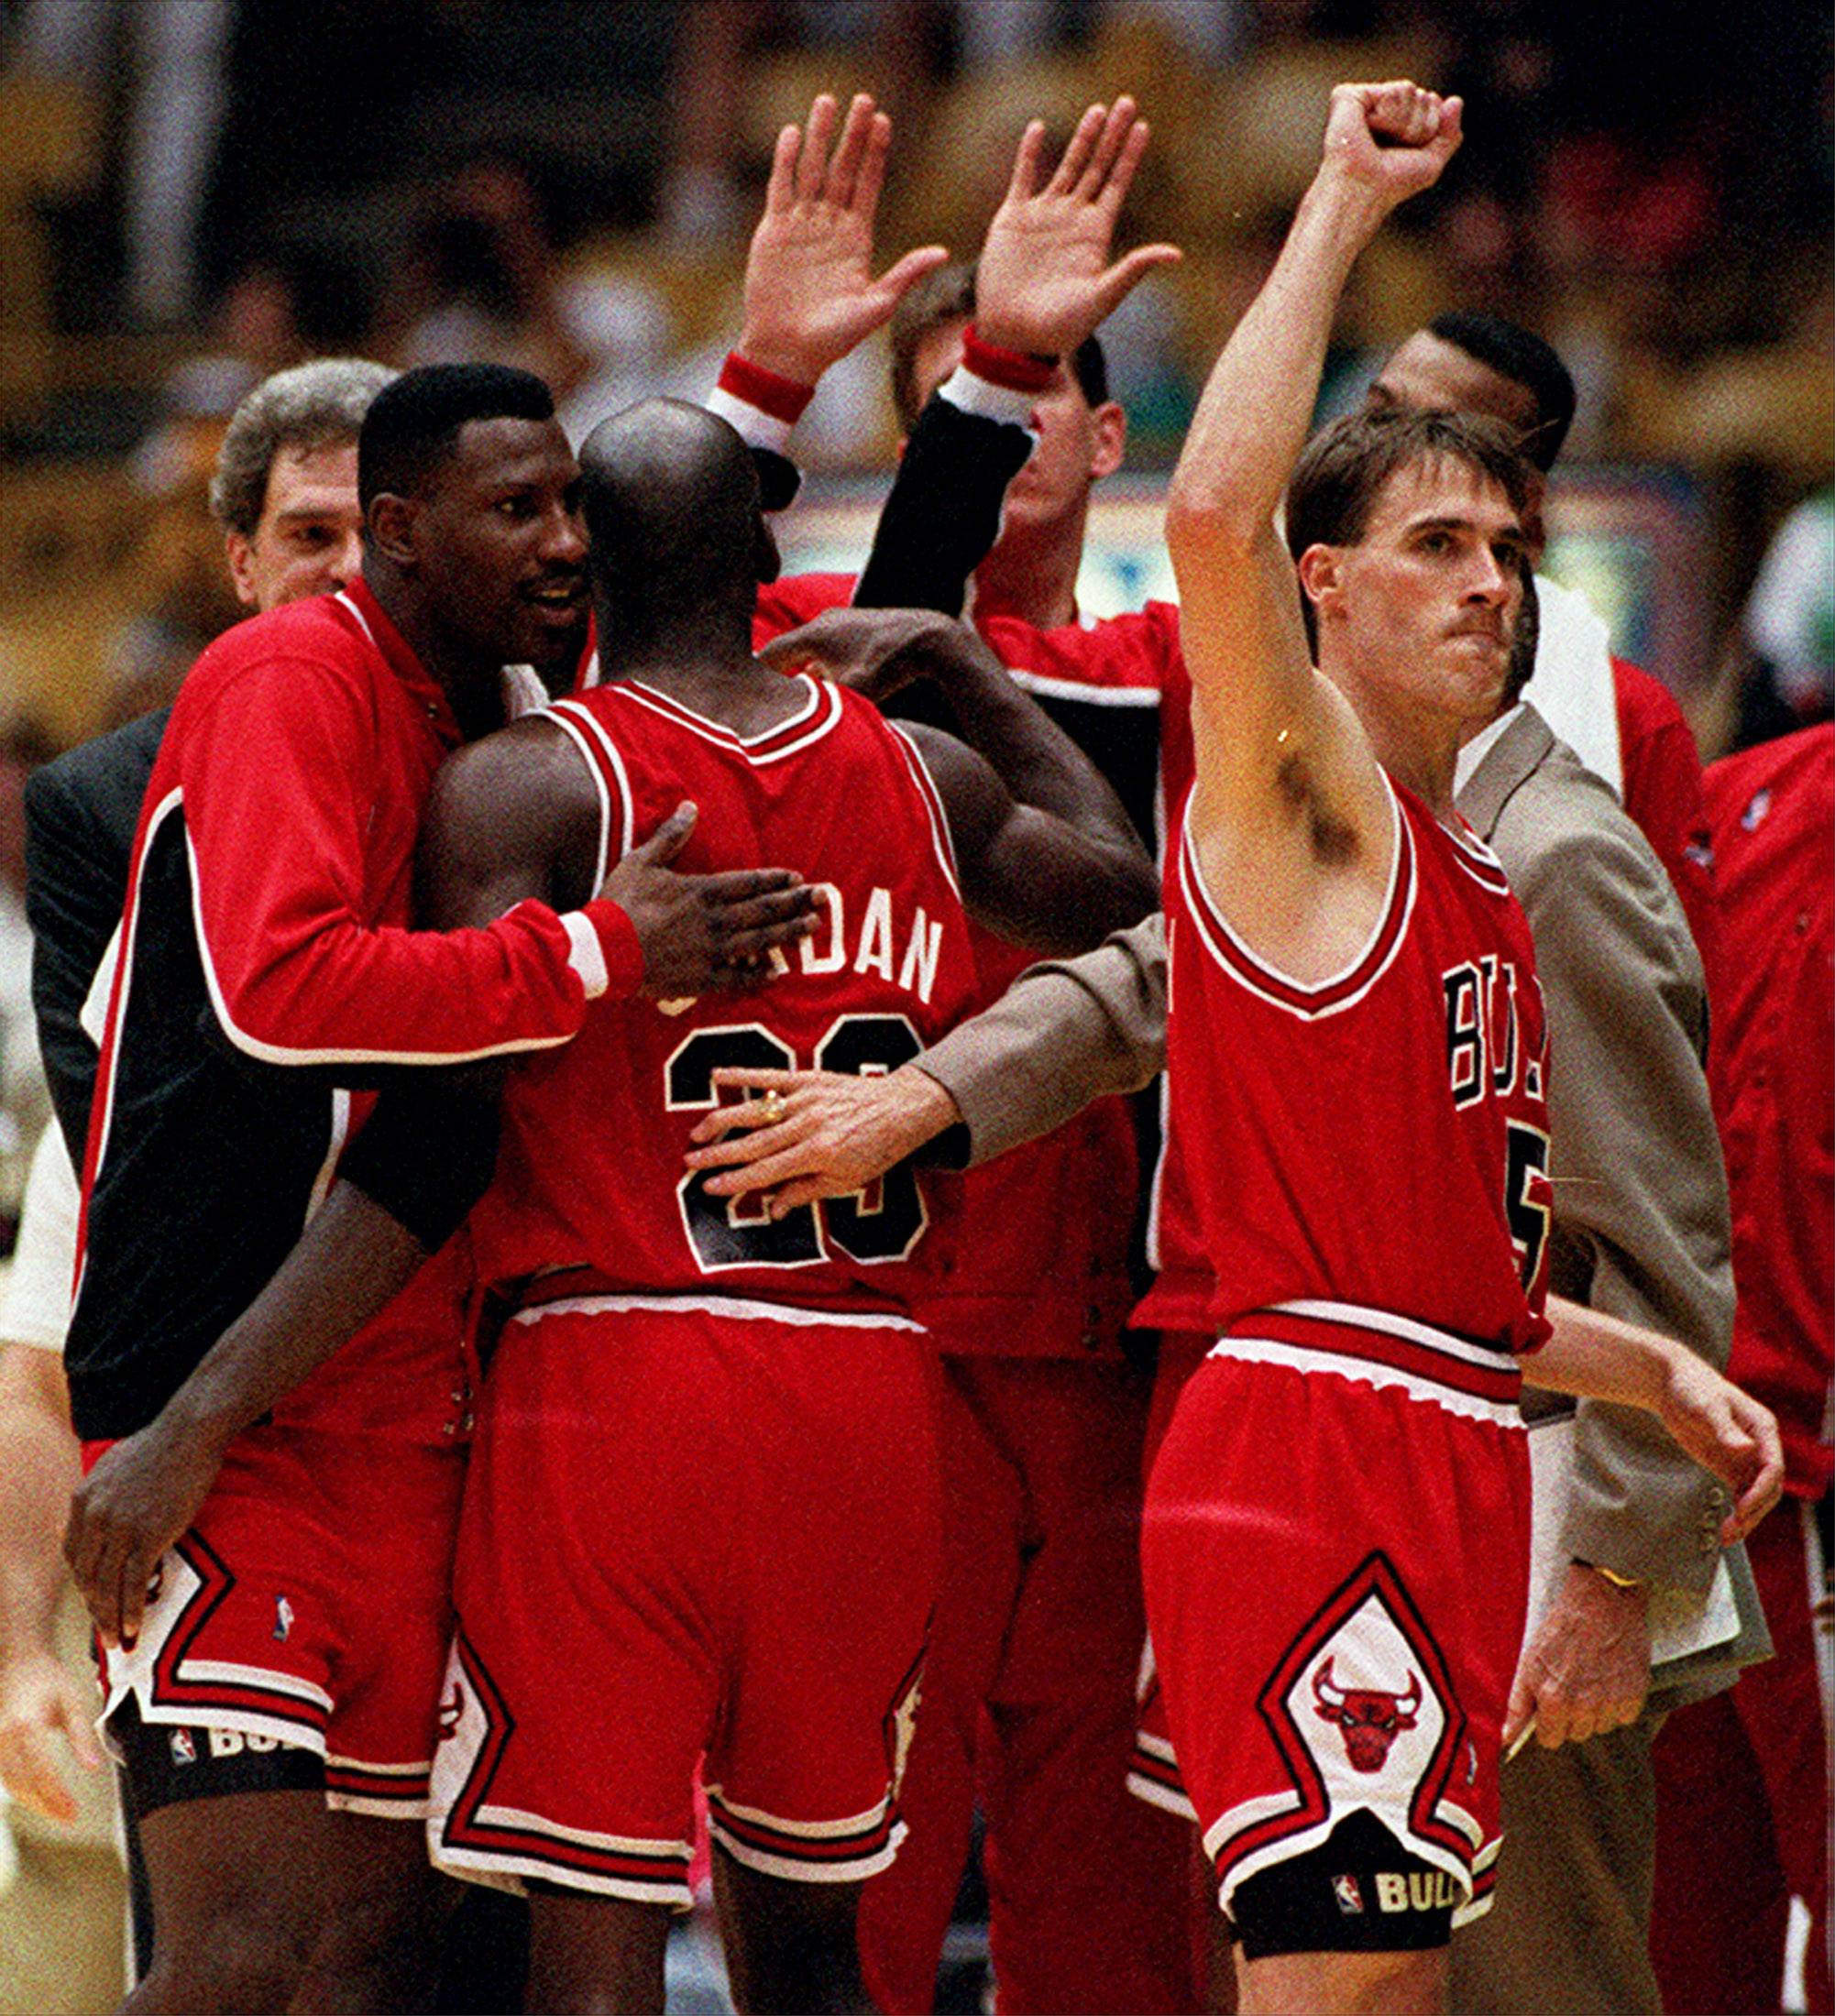 The memory of John Paxson the player, who teamed up so well with Michael Jordan during the Chicago Bulls' first trio of championships, continues to slip away because of his front-office role over the last 14 years.